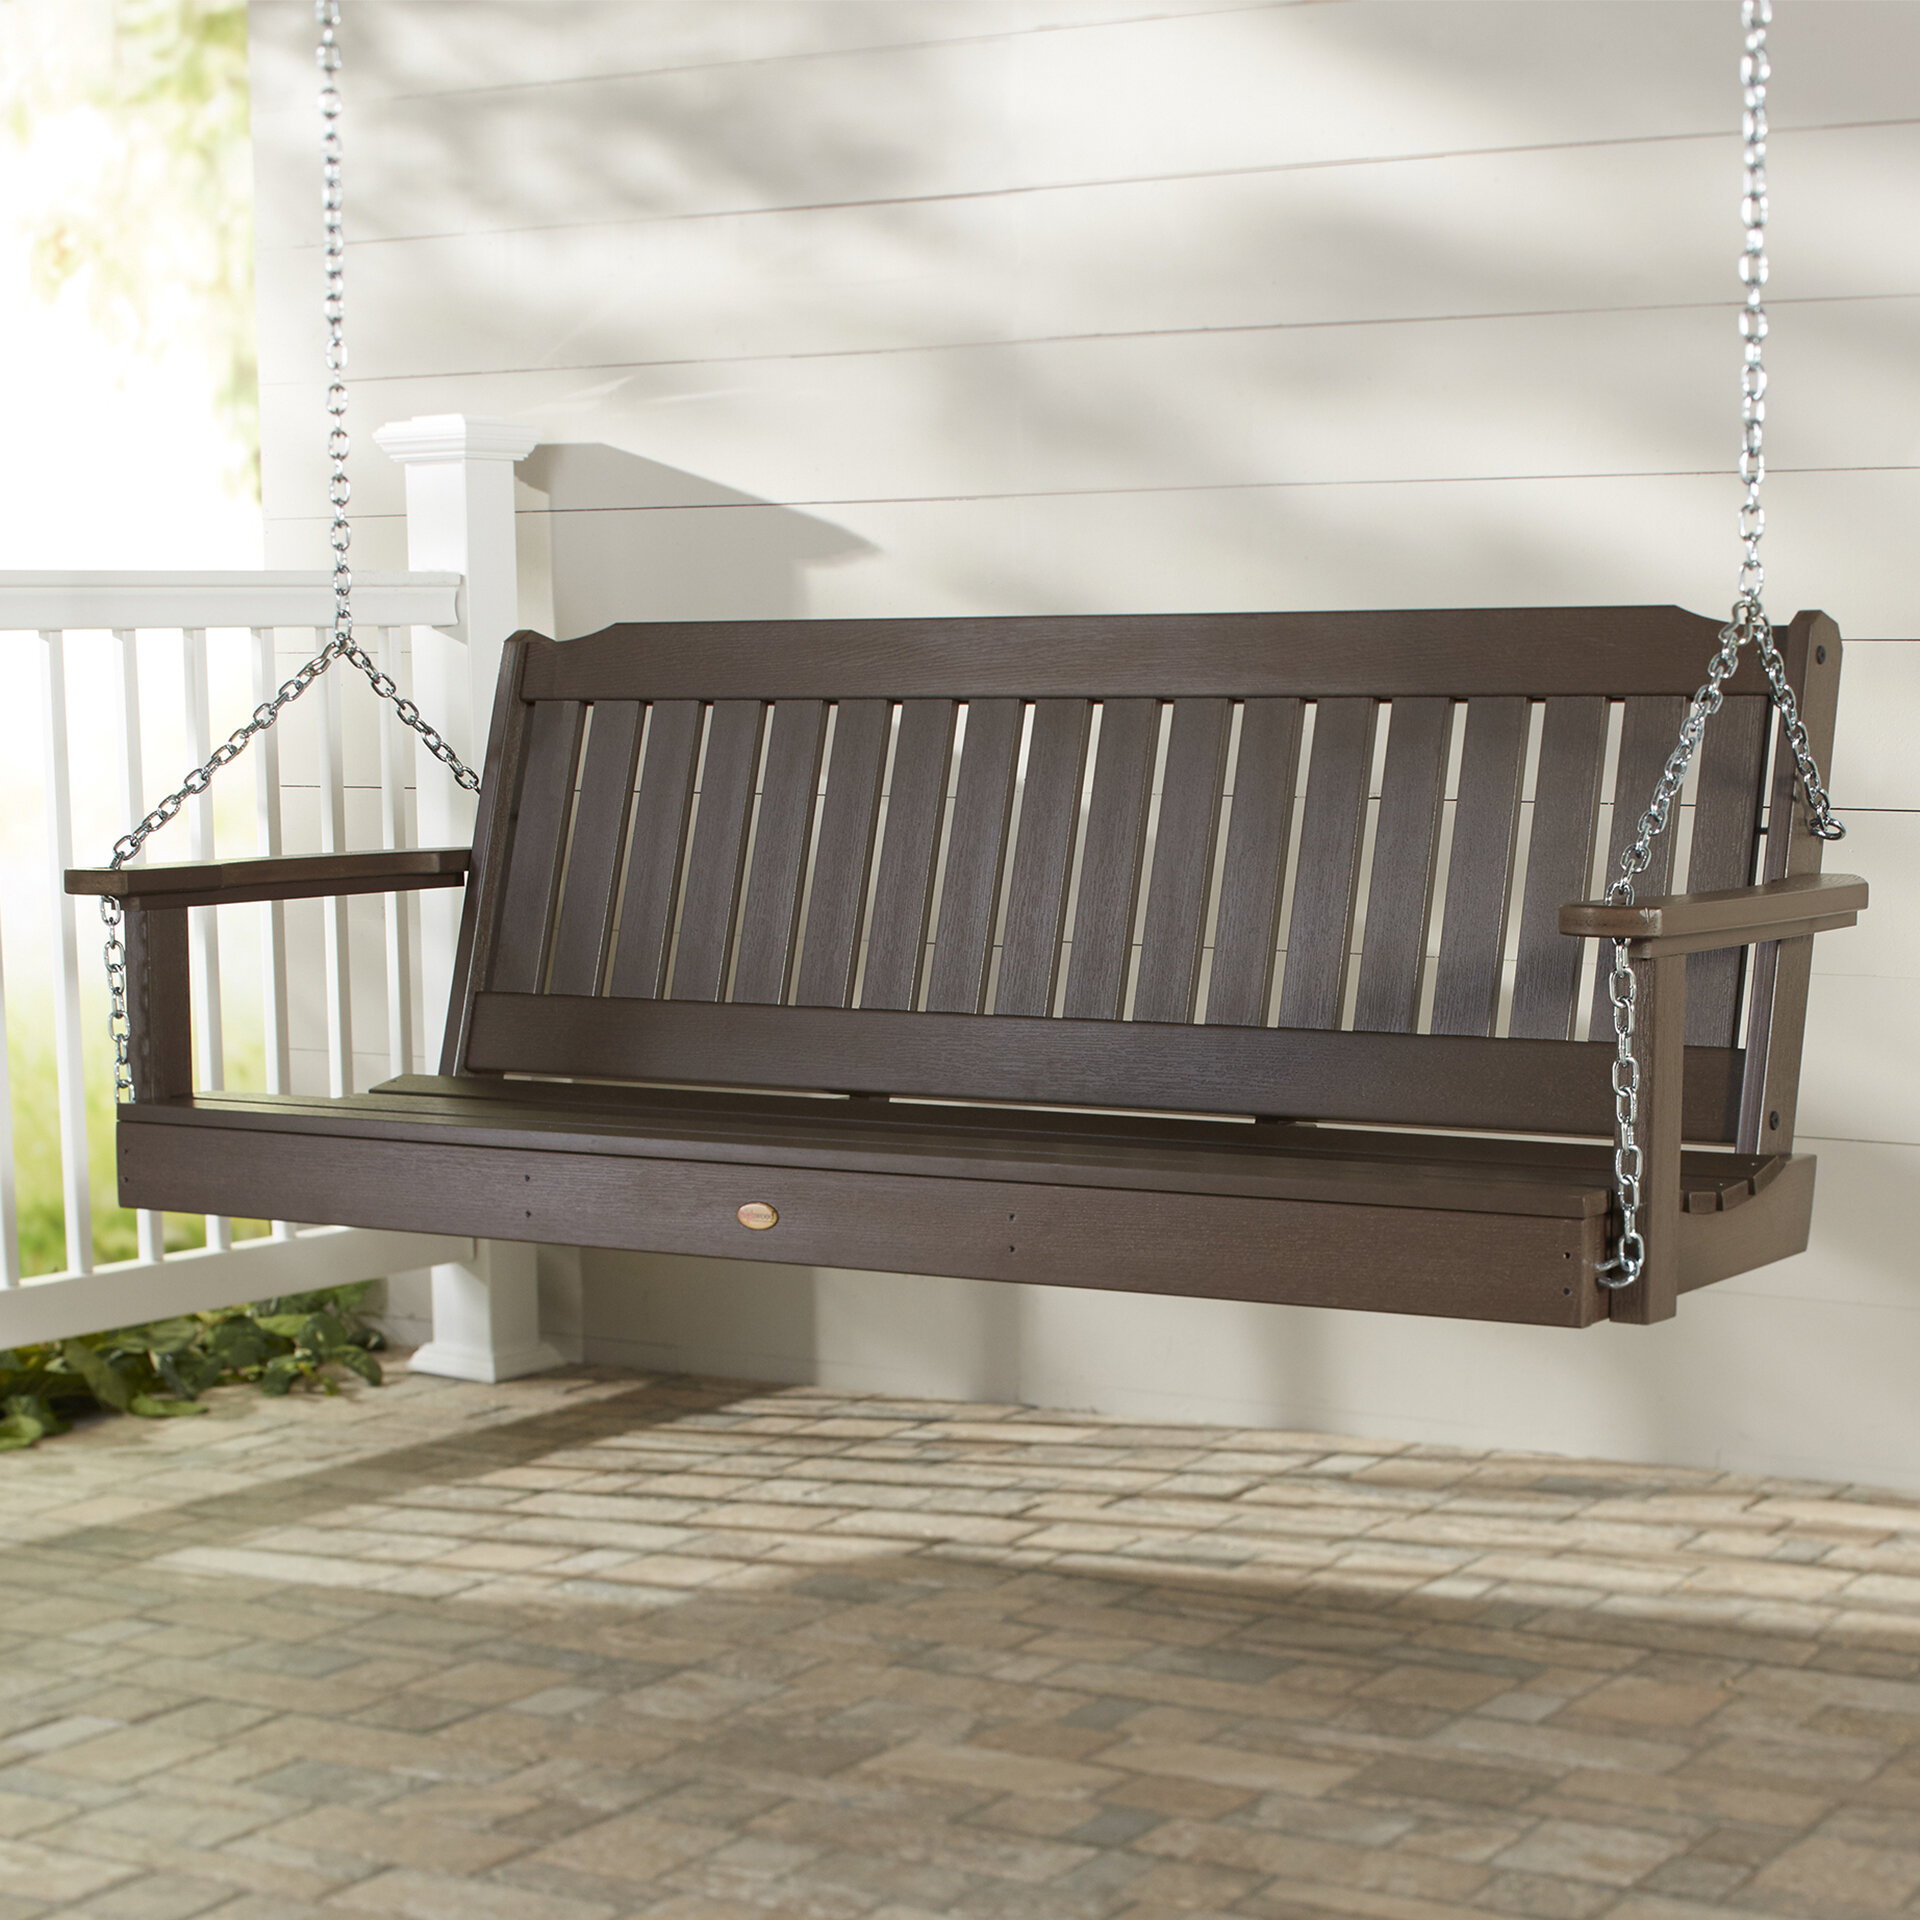 Amelia Porch Swing With Regard To Fordyce Porch Swings (View 11 of 25)